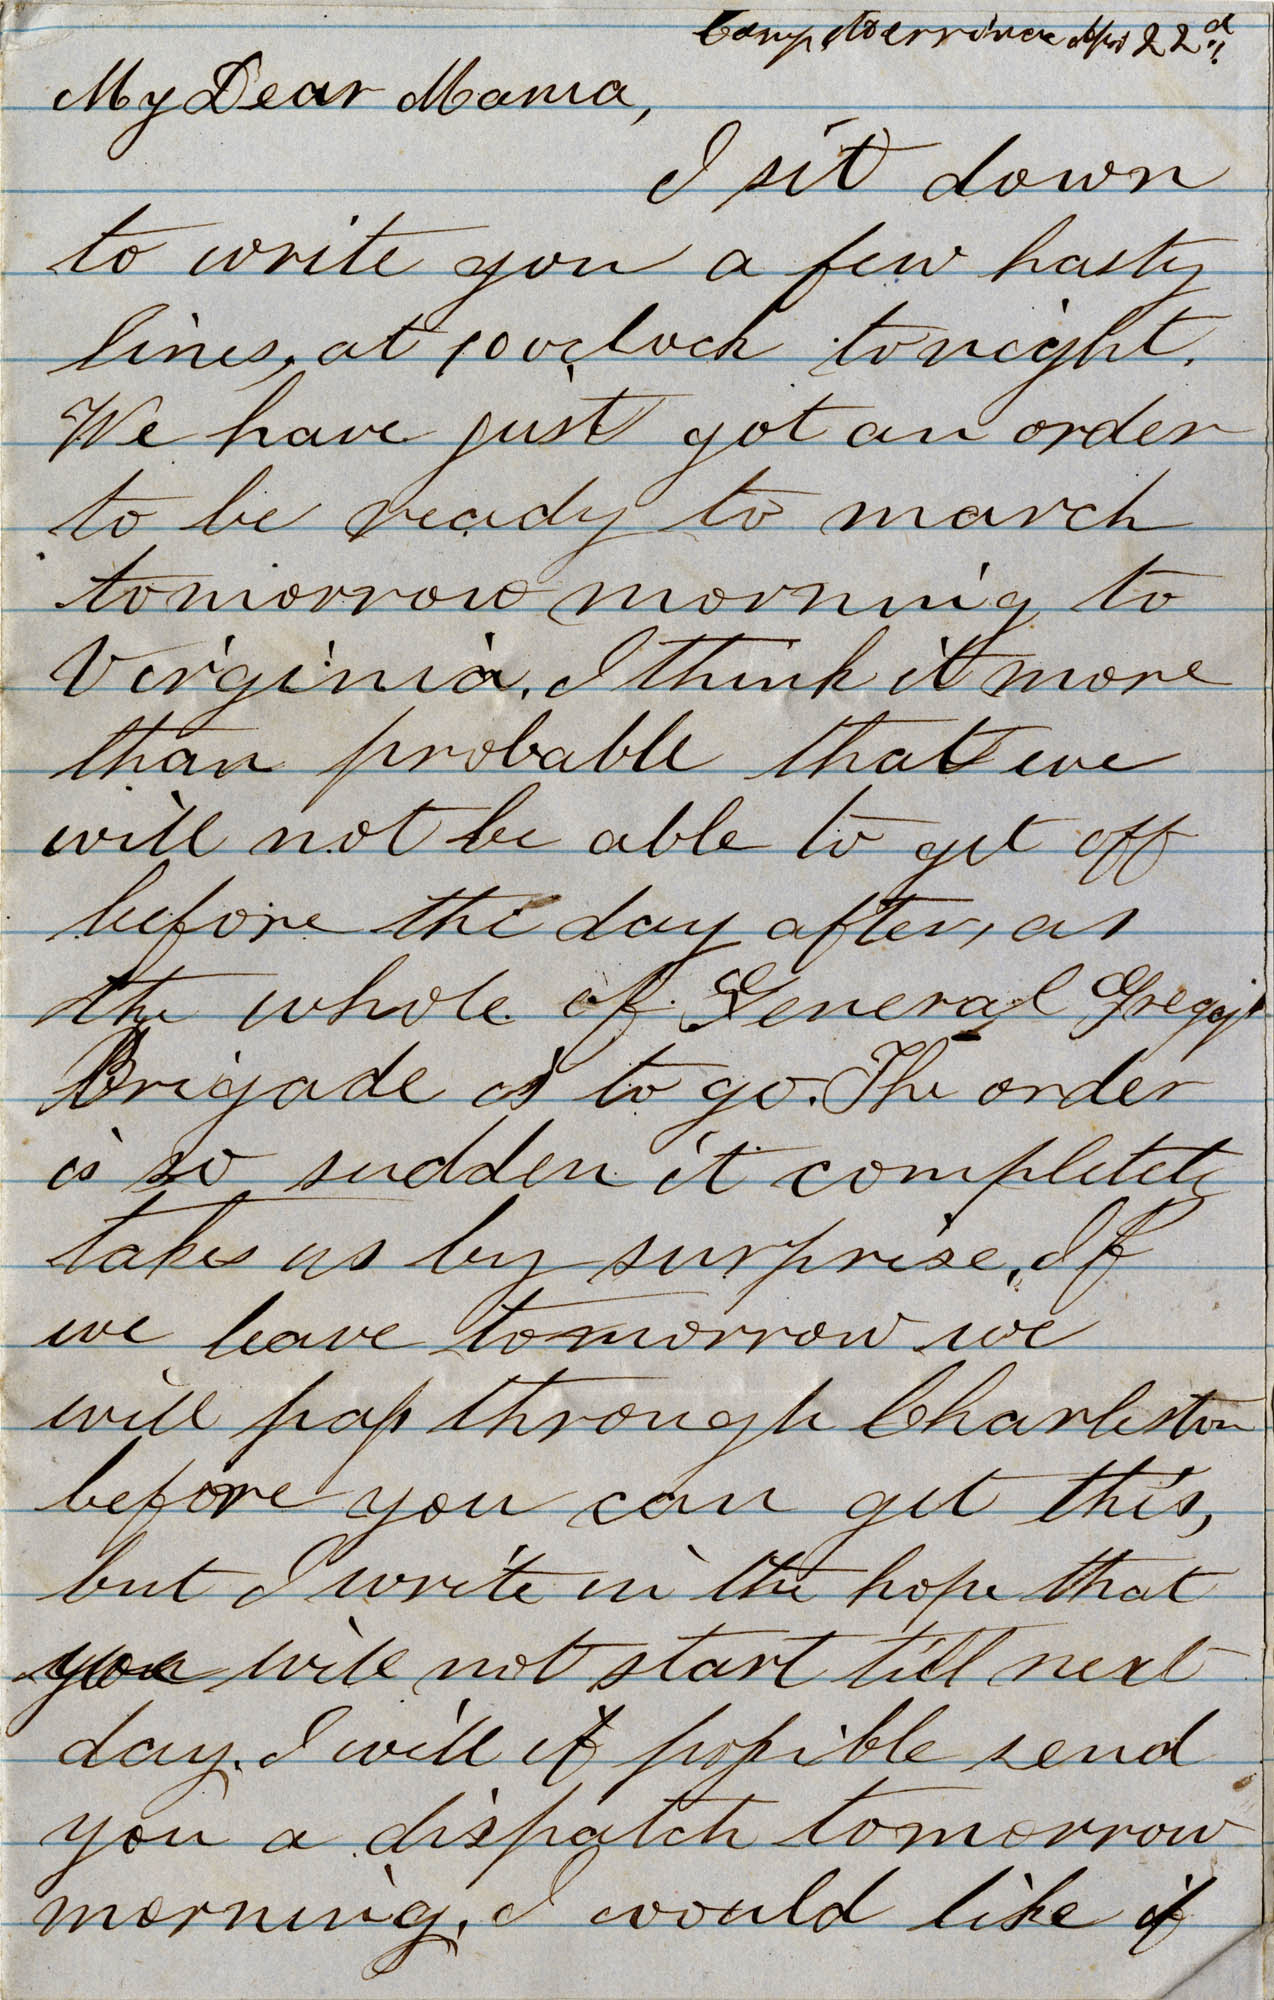 053. Willis Keith to Anna Bella Keith -- [Sept?] 22, 1862.